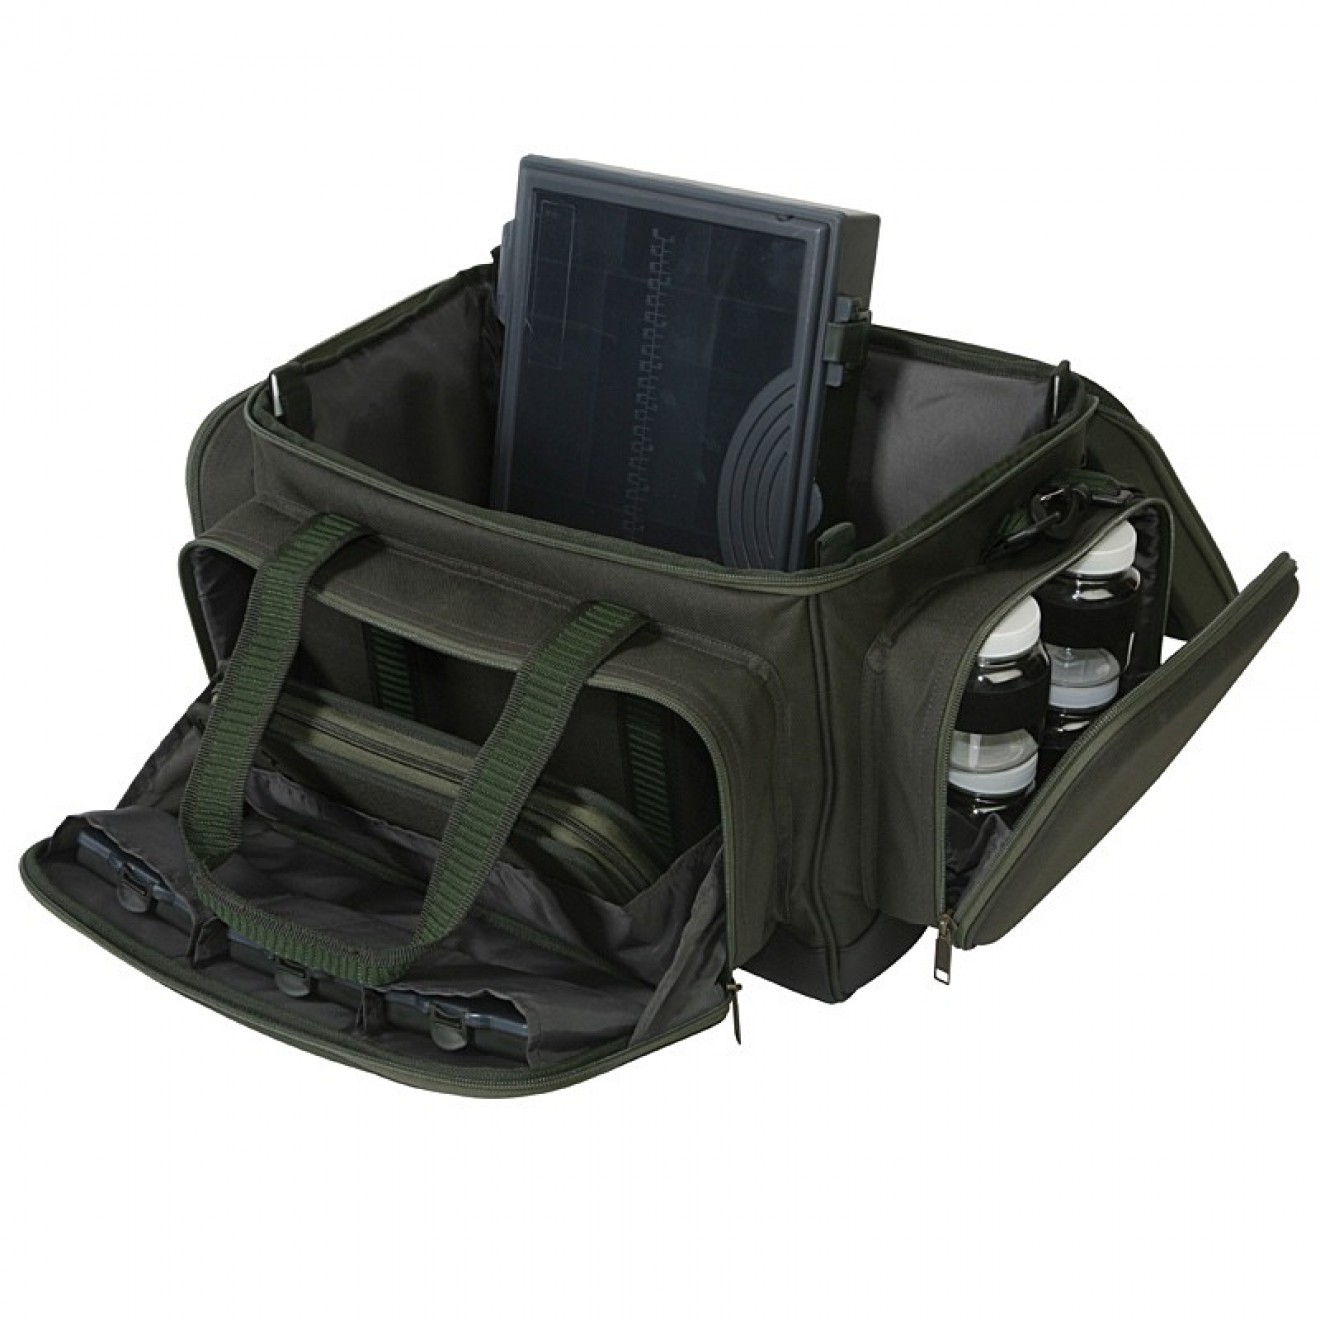 DAIWA - Infinity Complete Carryall & Bait Table